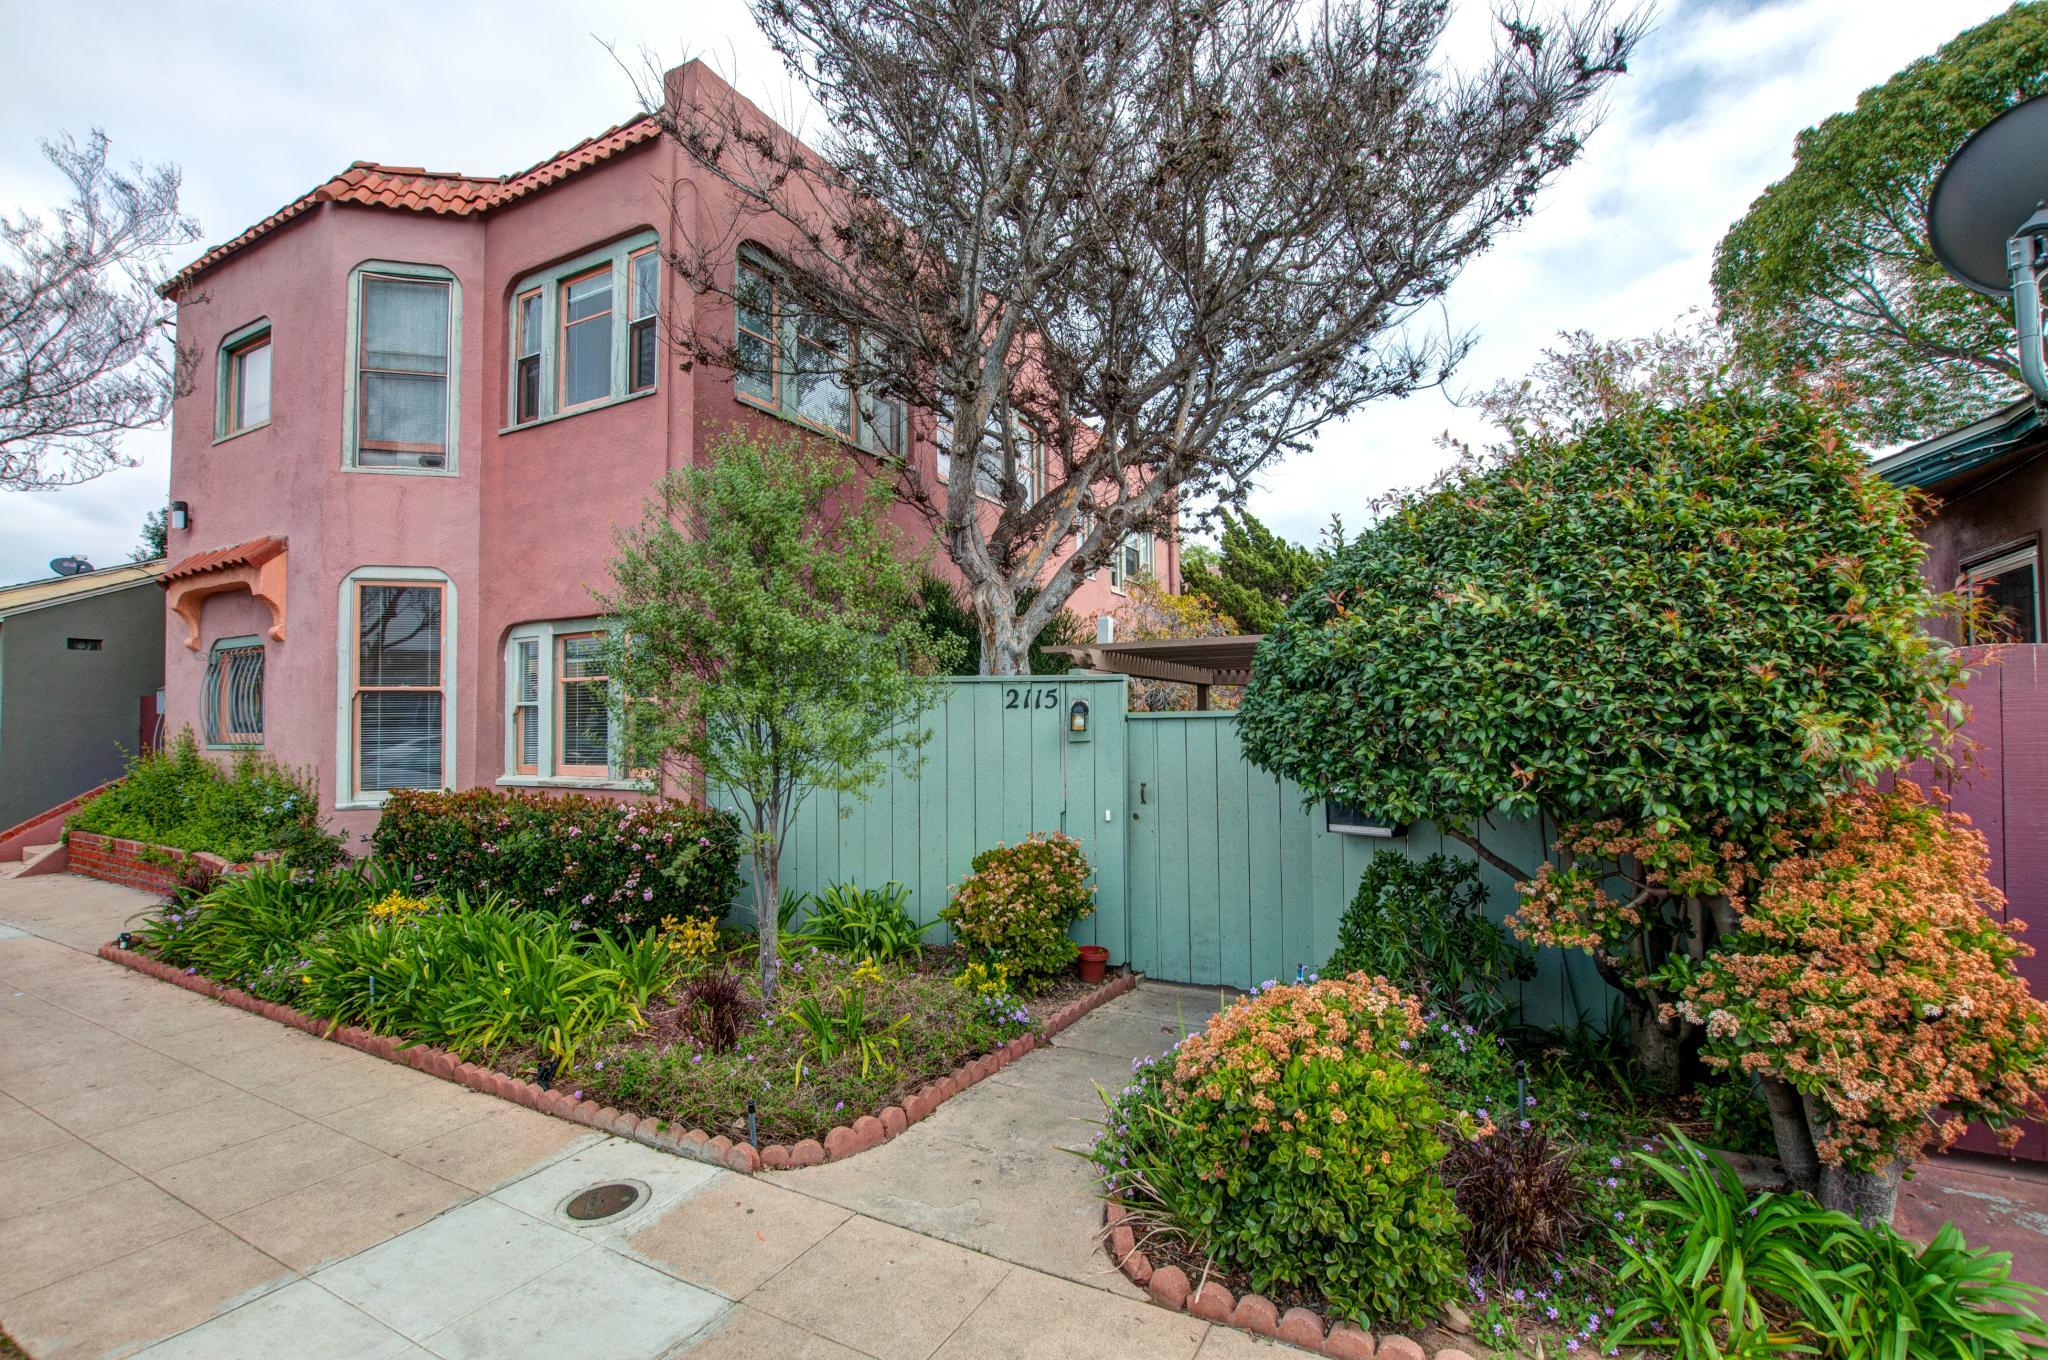 2115 30th St For Rent - San Diego, CA   Trulia